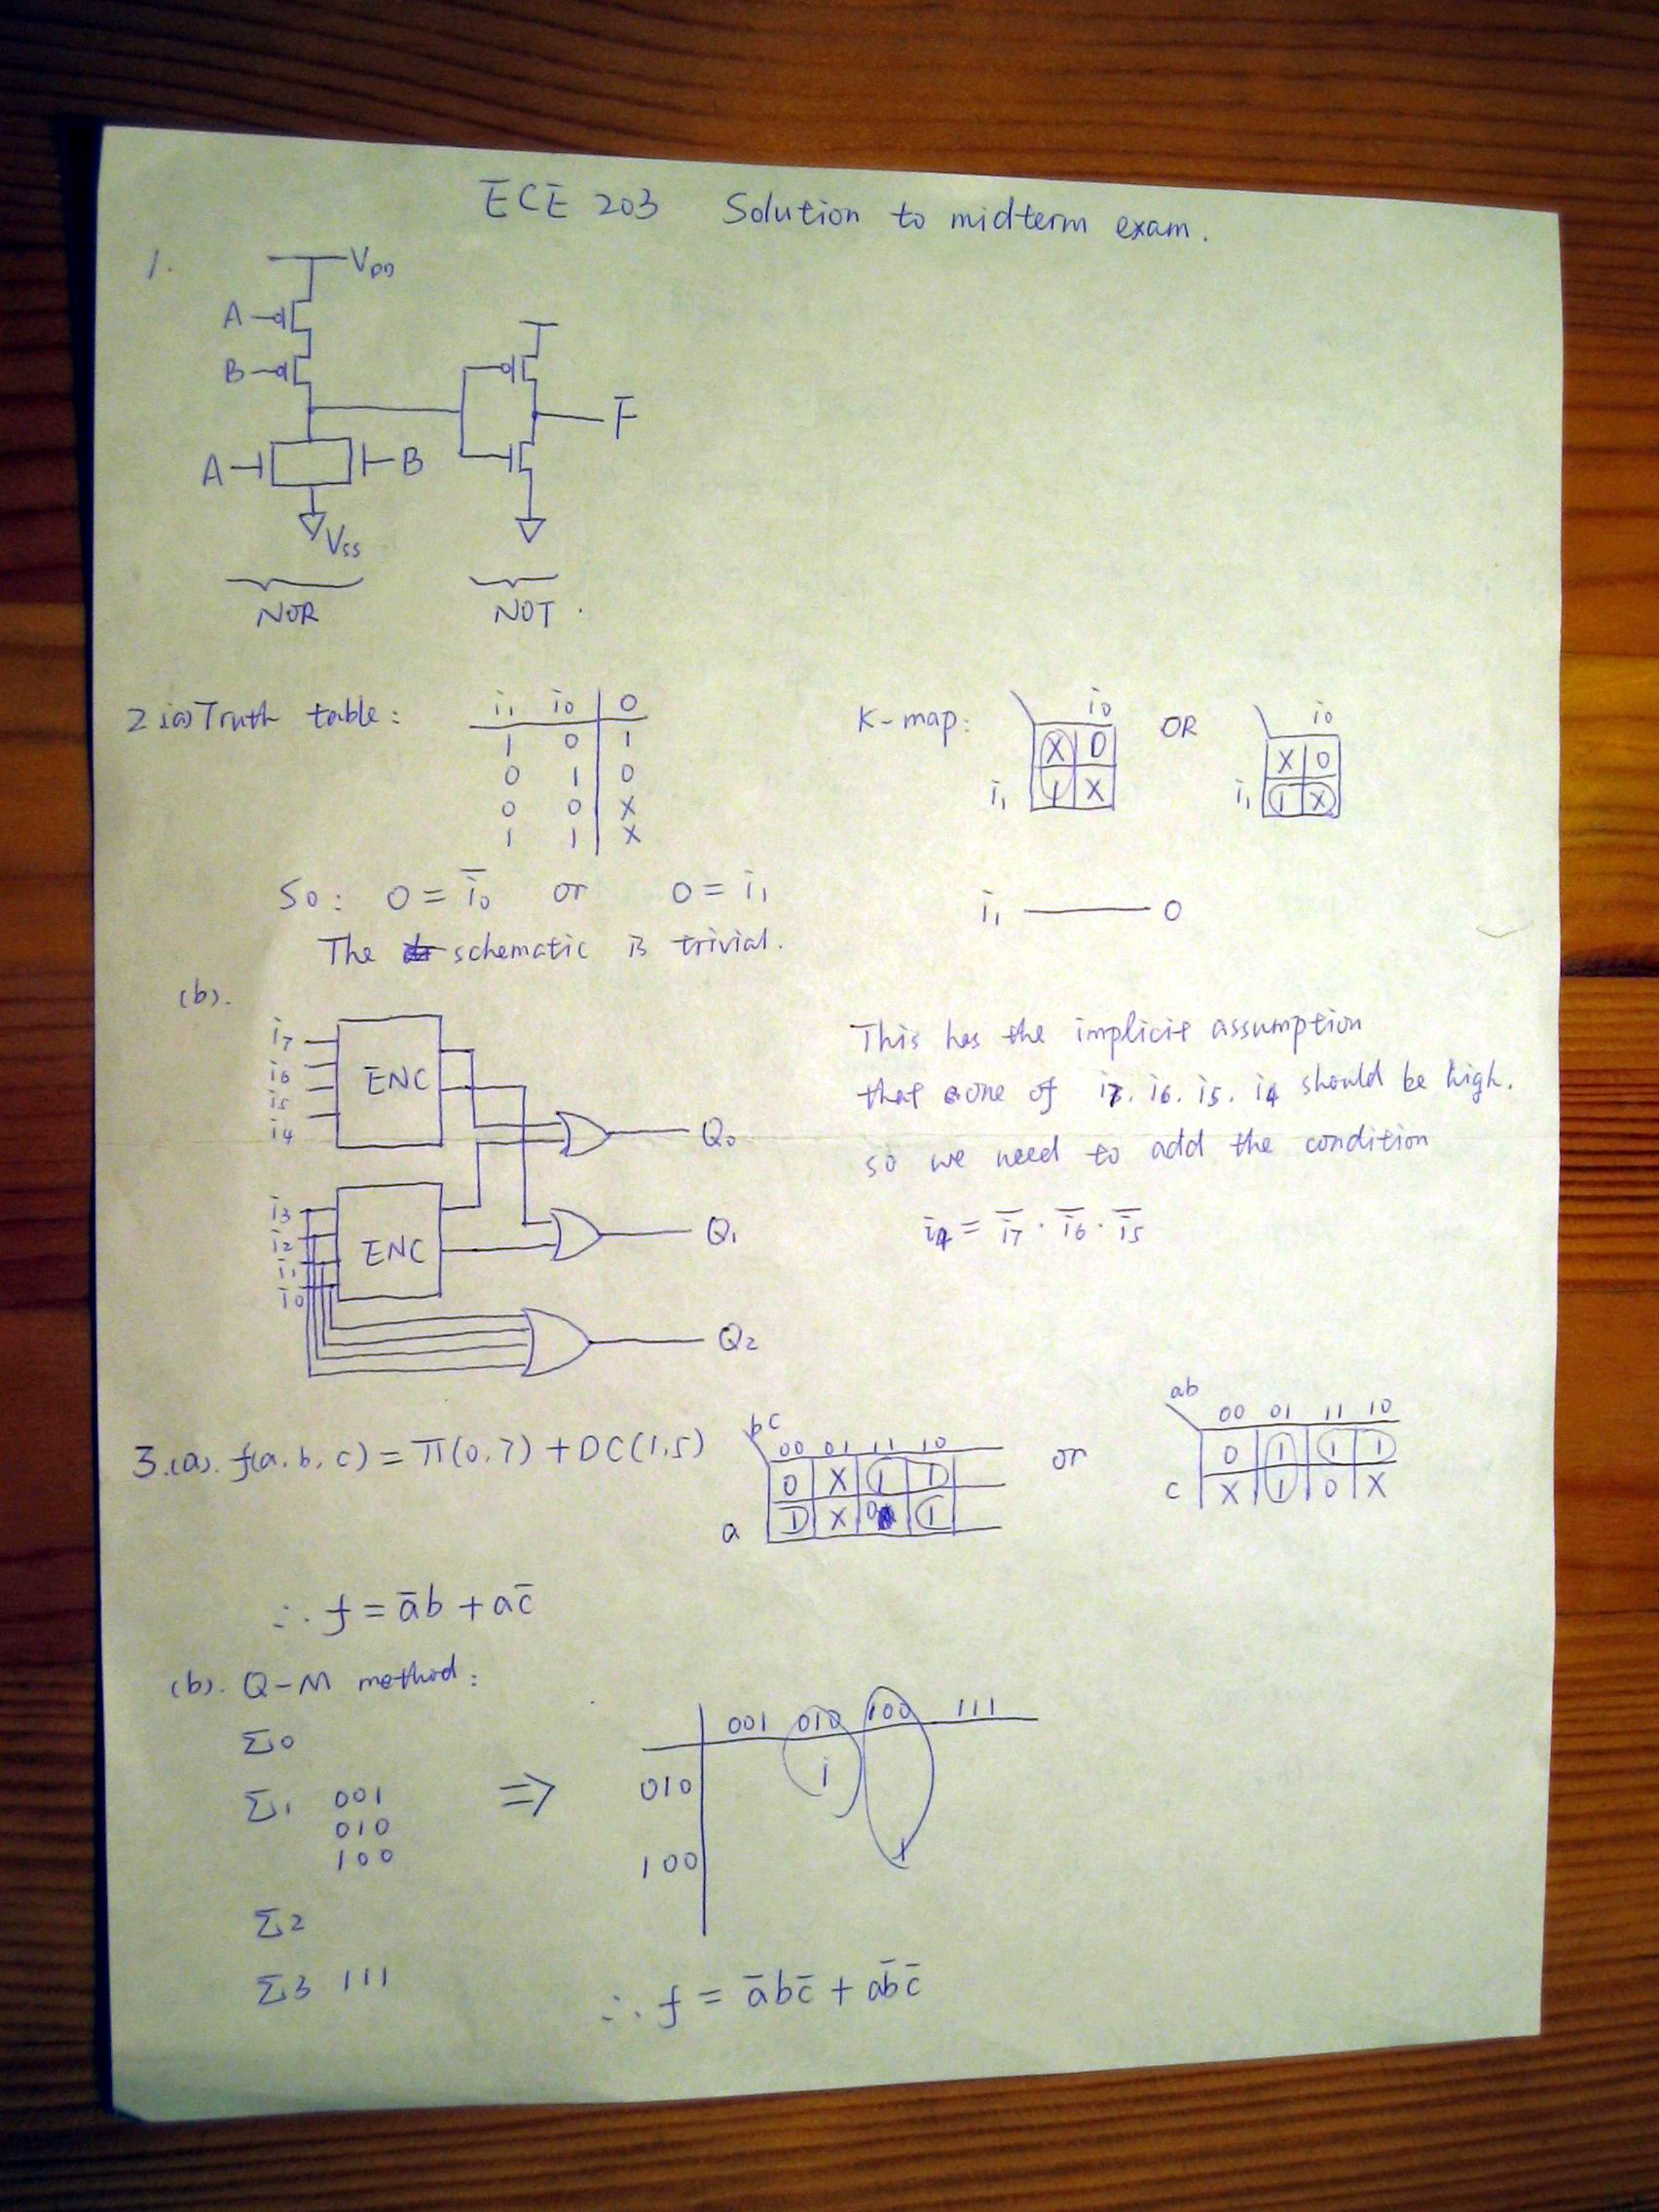 eecs 203 w1 exam solutions Eecs 556, 2003 exam #2 solutions 1 take-home exam #2 solutions  in to do this problem, we must assume that w 1 and w 2 are jointly wss we can also quickly see .